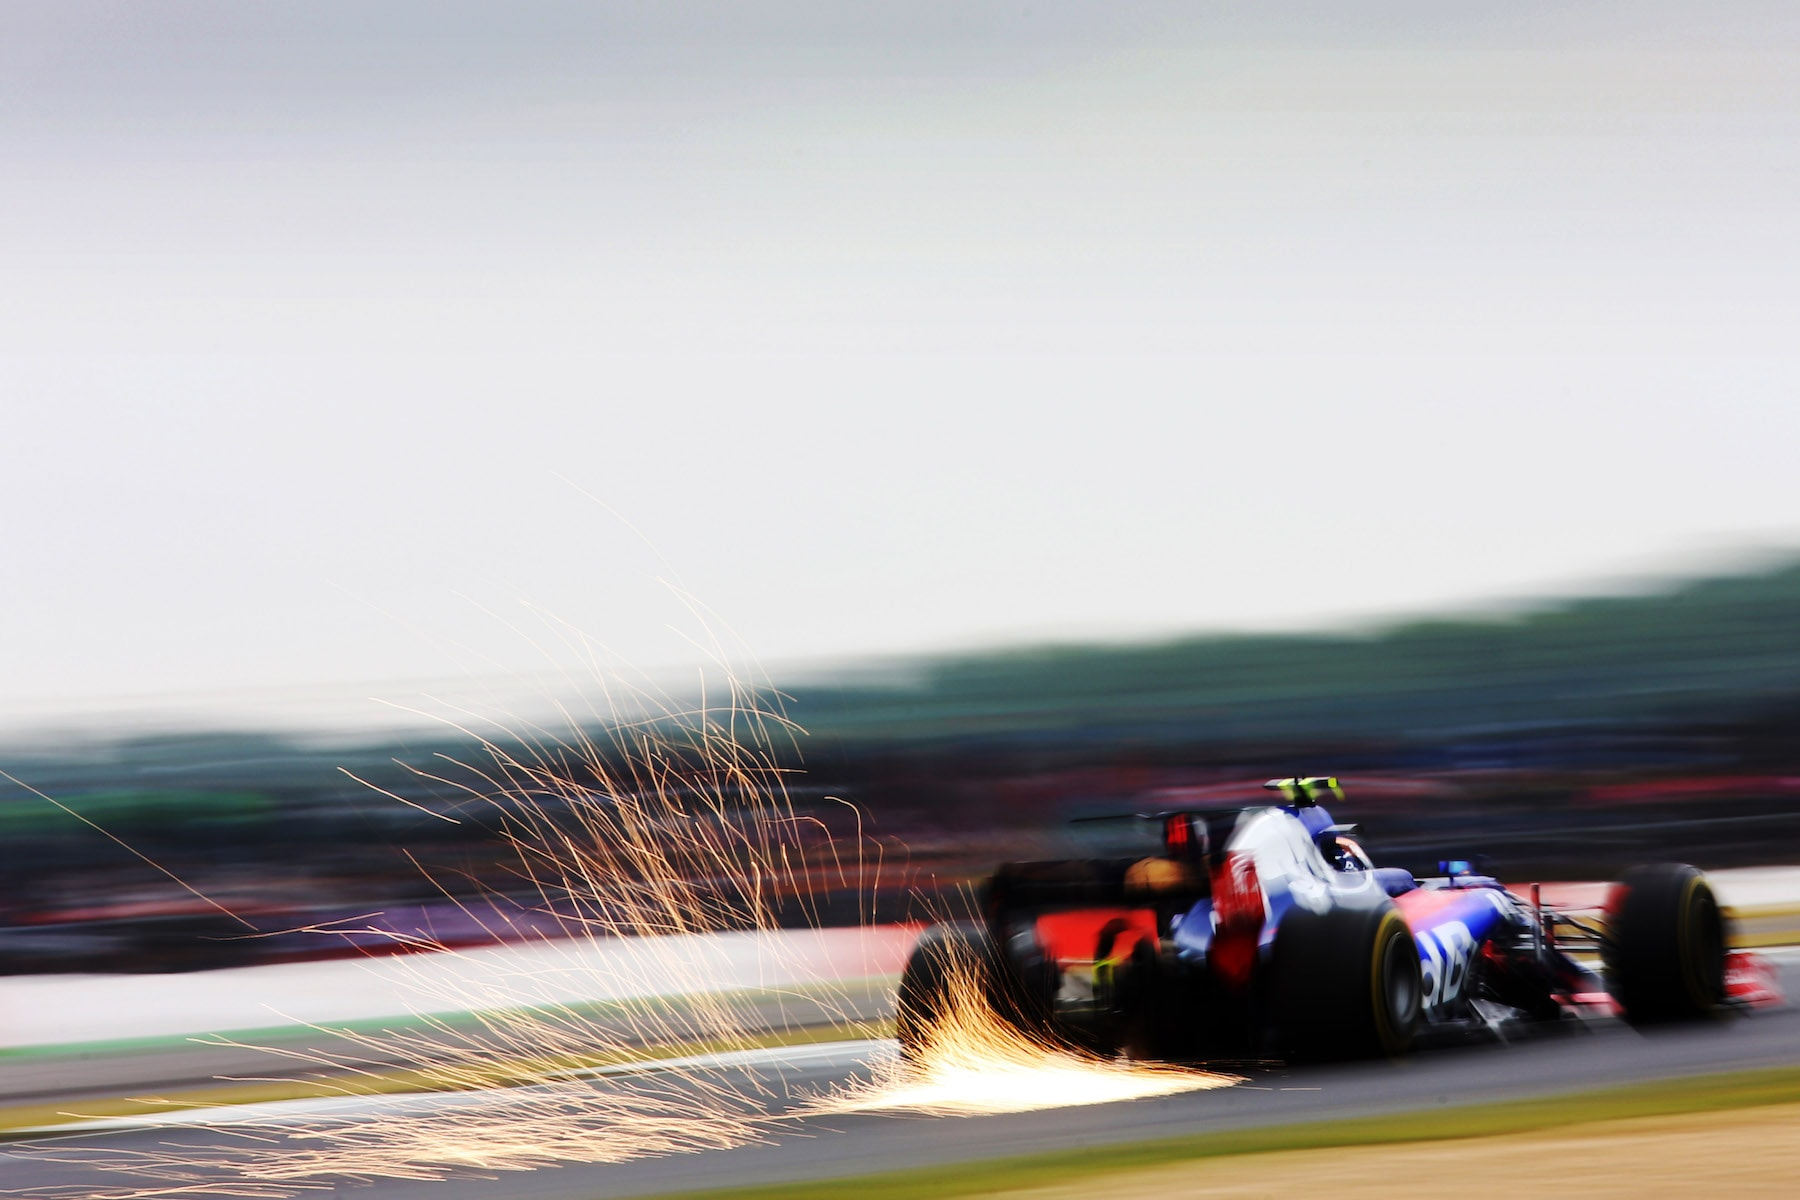 2017 Carlos Sainz | Toro Rosso STR12 | 2017 British GP FP3 1 copy.jpg